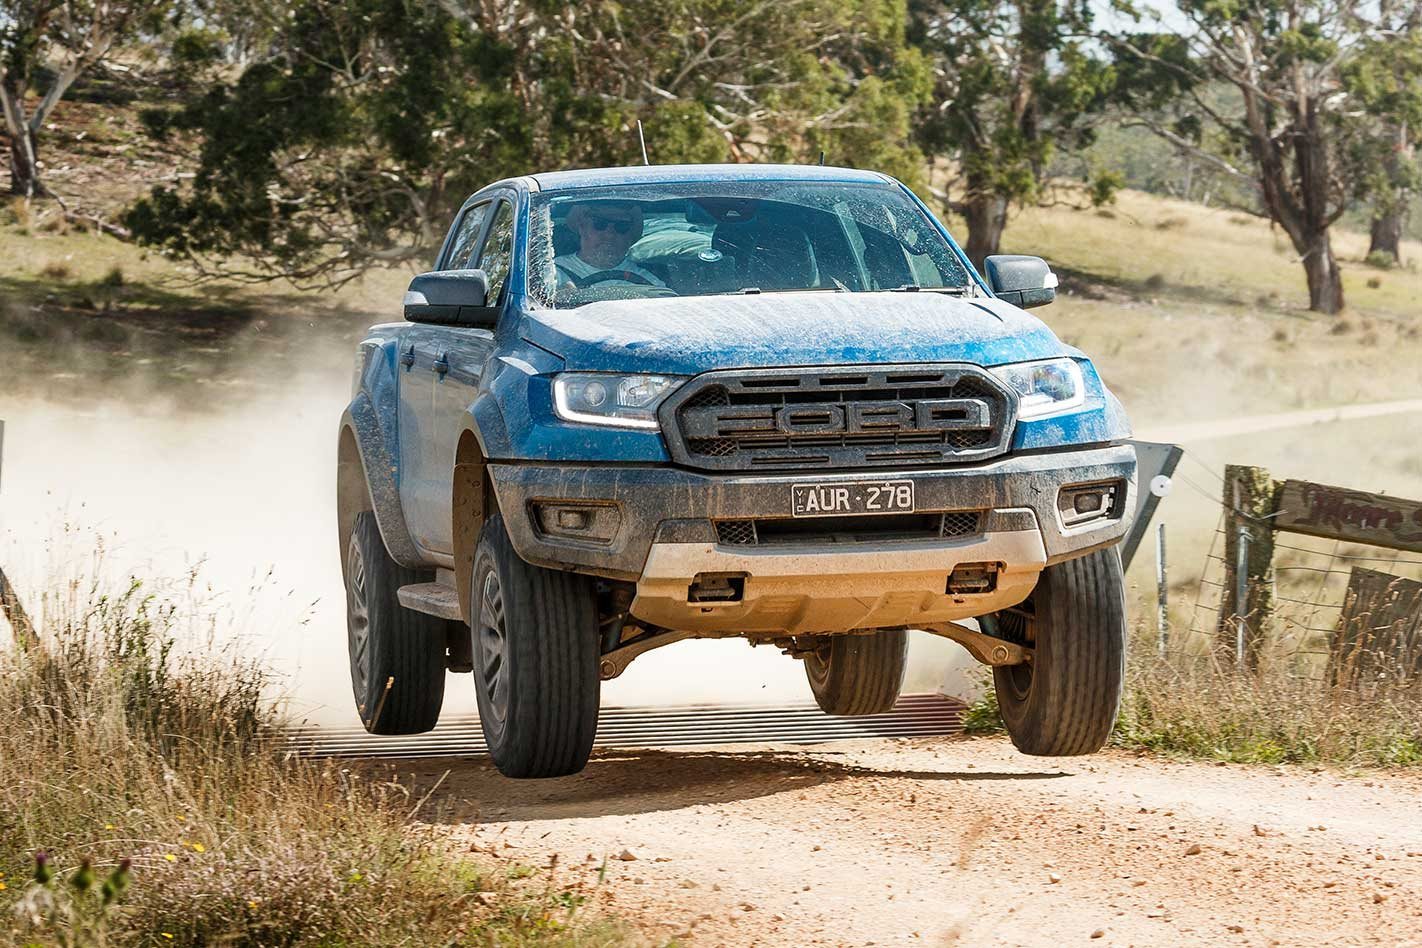 2019 Ford Ranger Raptor feature review | 4x4 Australia